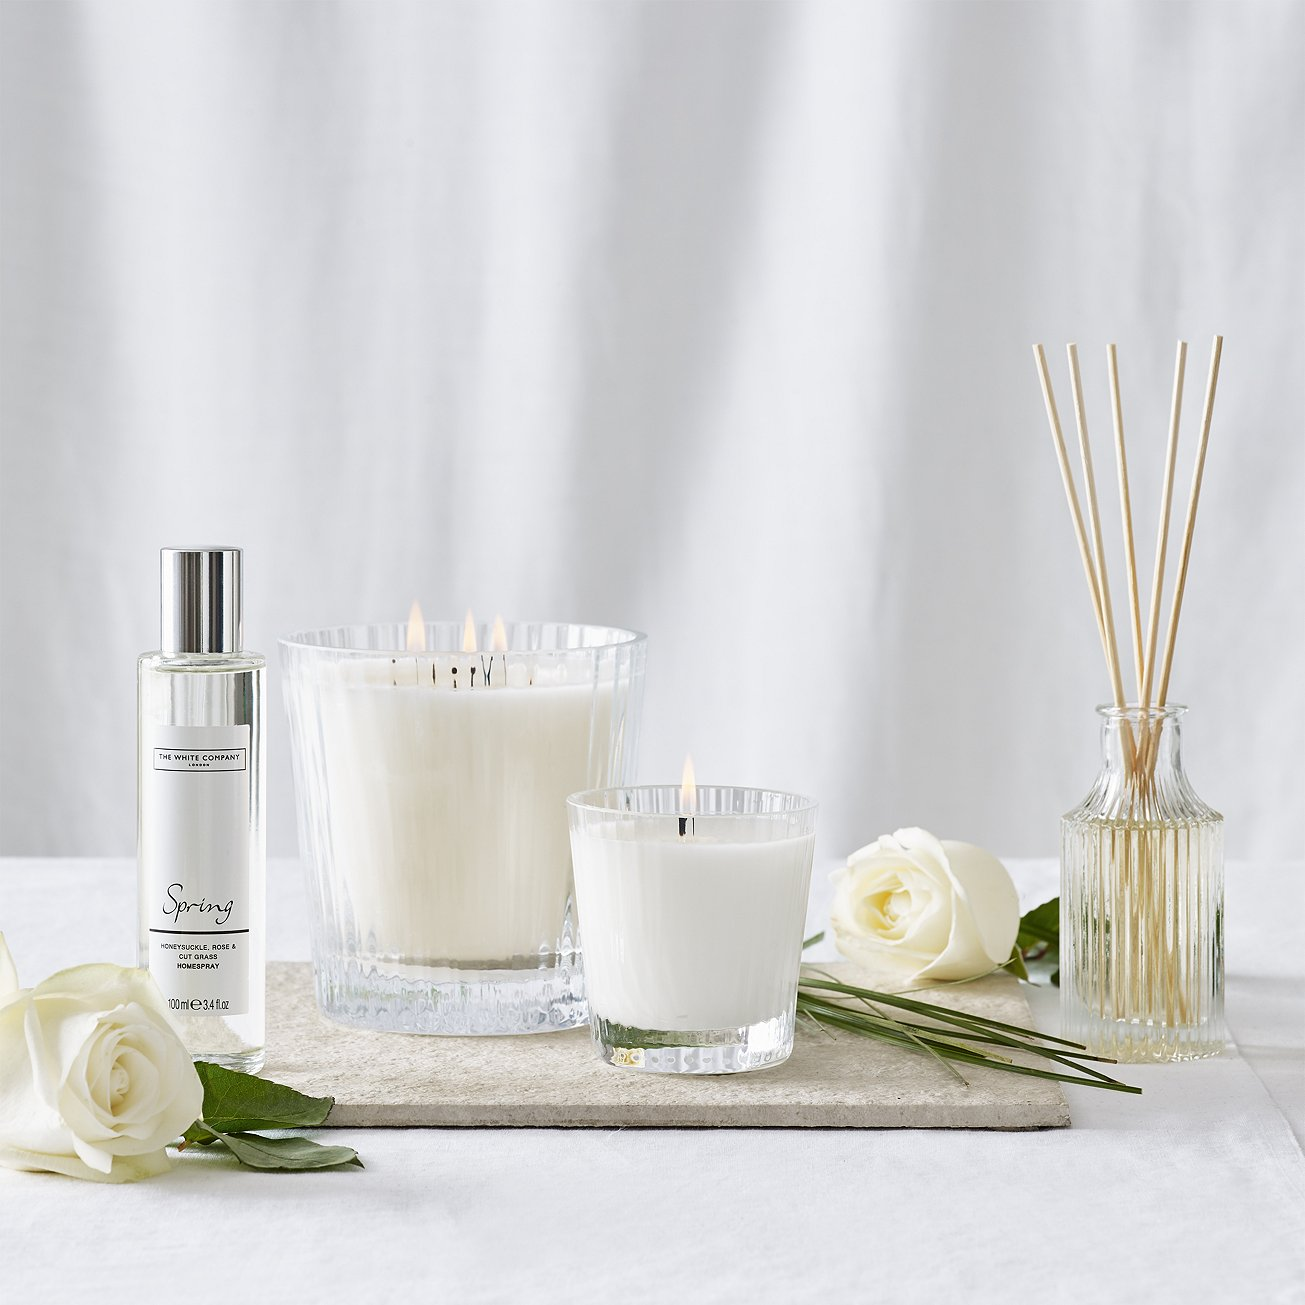 The Spring collection features fragrances such as  honeysuckle, rose, jasmine and lilac combine with the earthy aroma of freshly mown grass, how refreshing. - £16.00